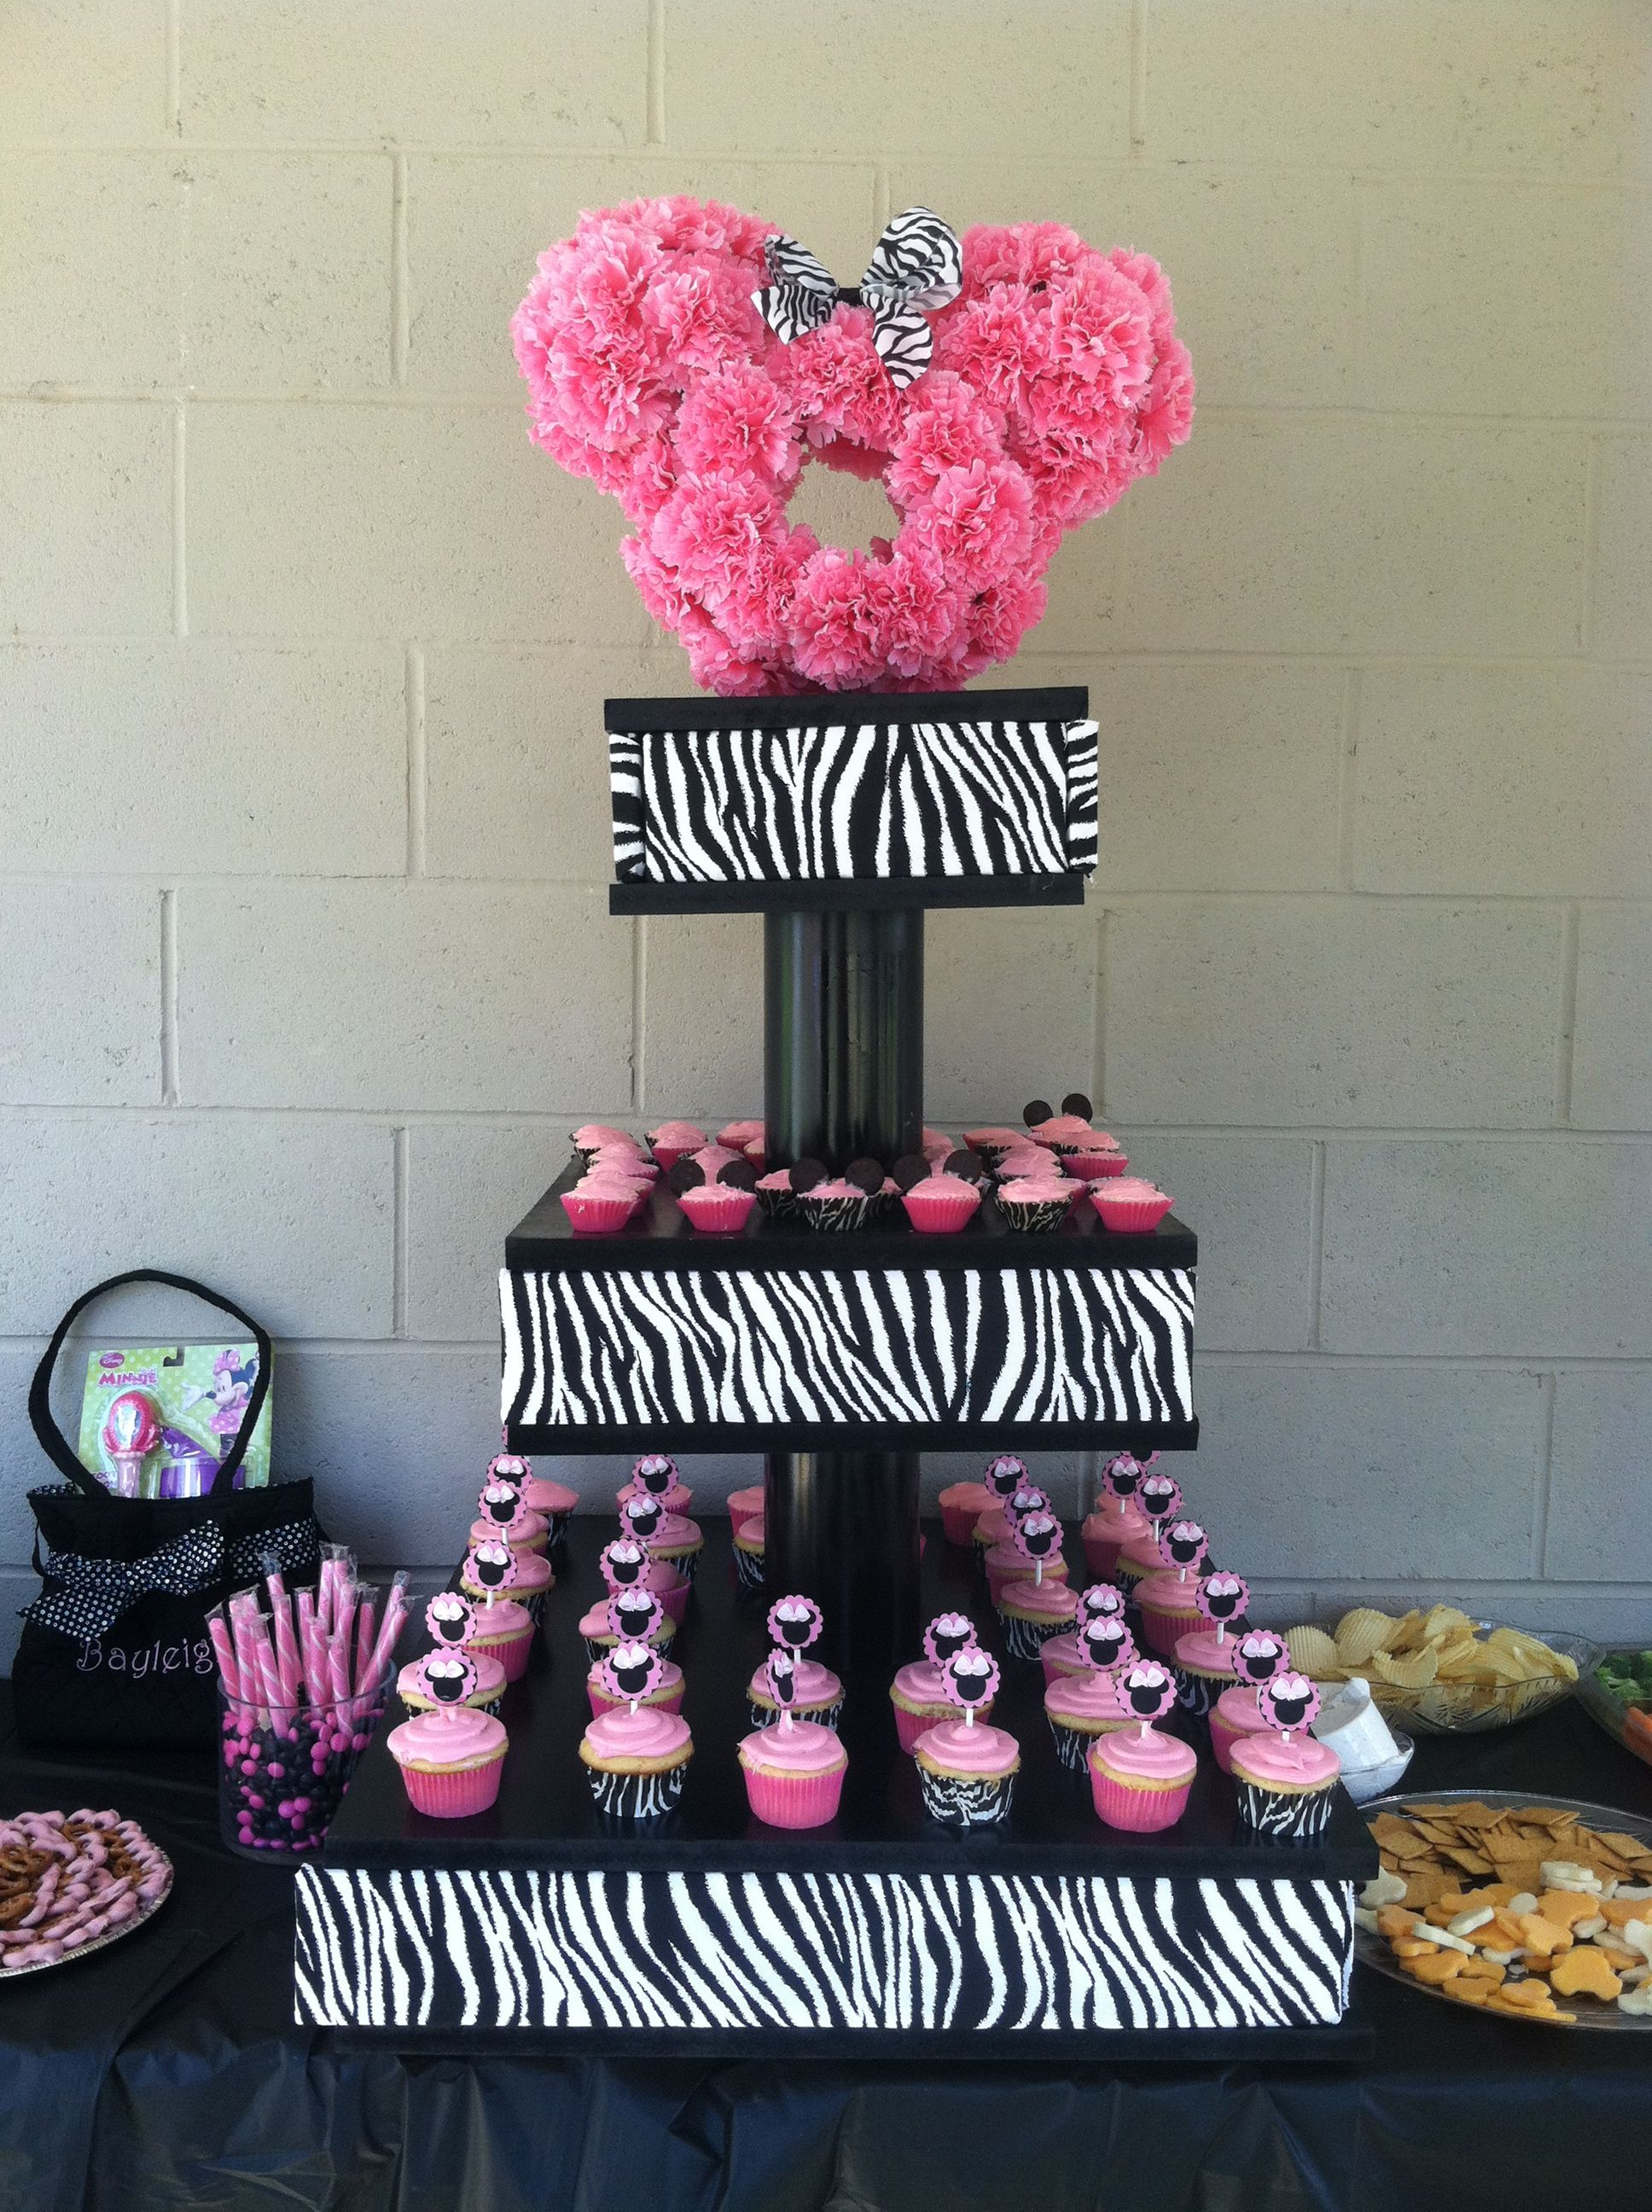 Minnie mouse cupcake stand!